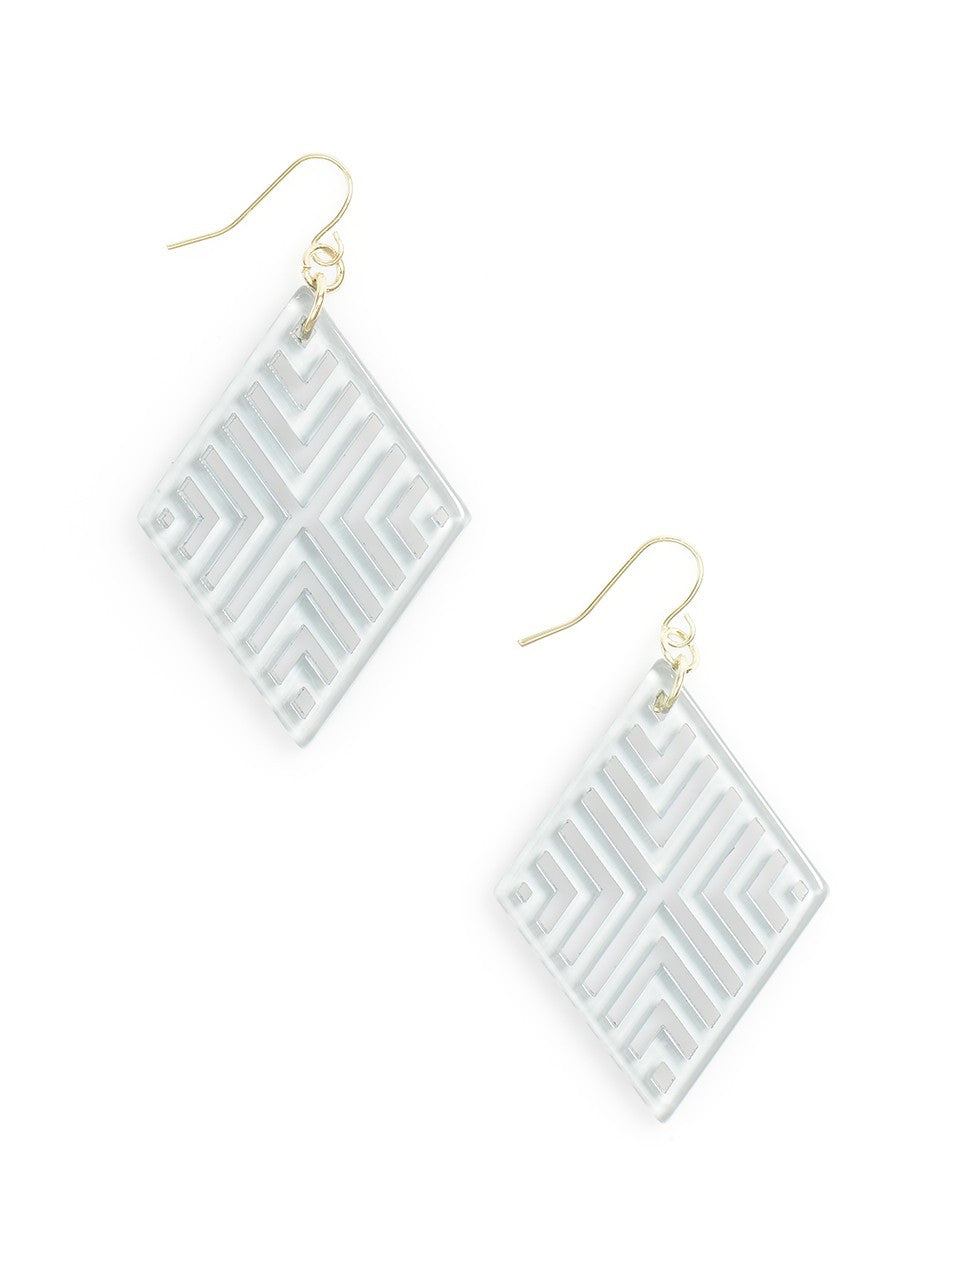 DIAMOND LIFE EARRINGS